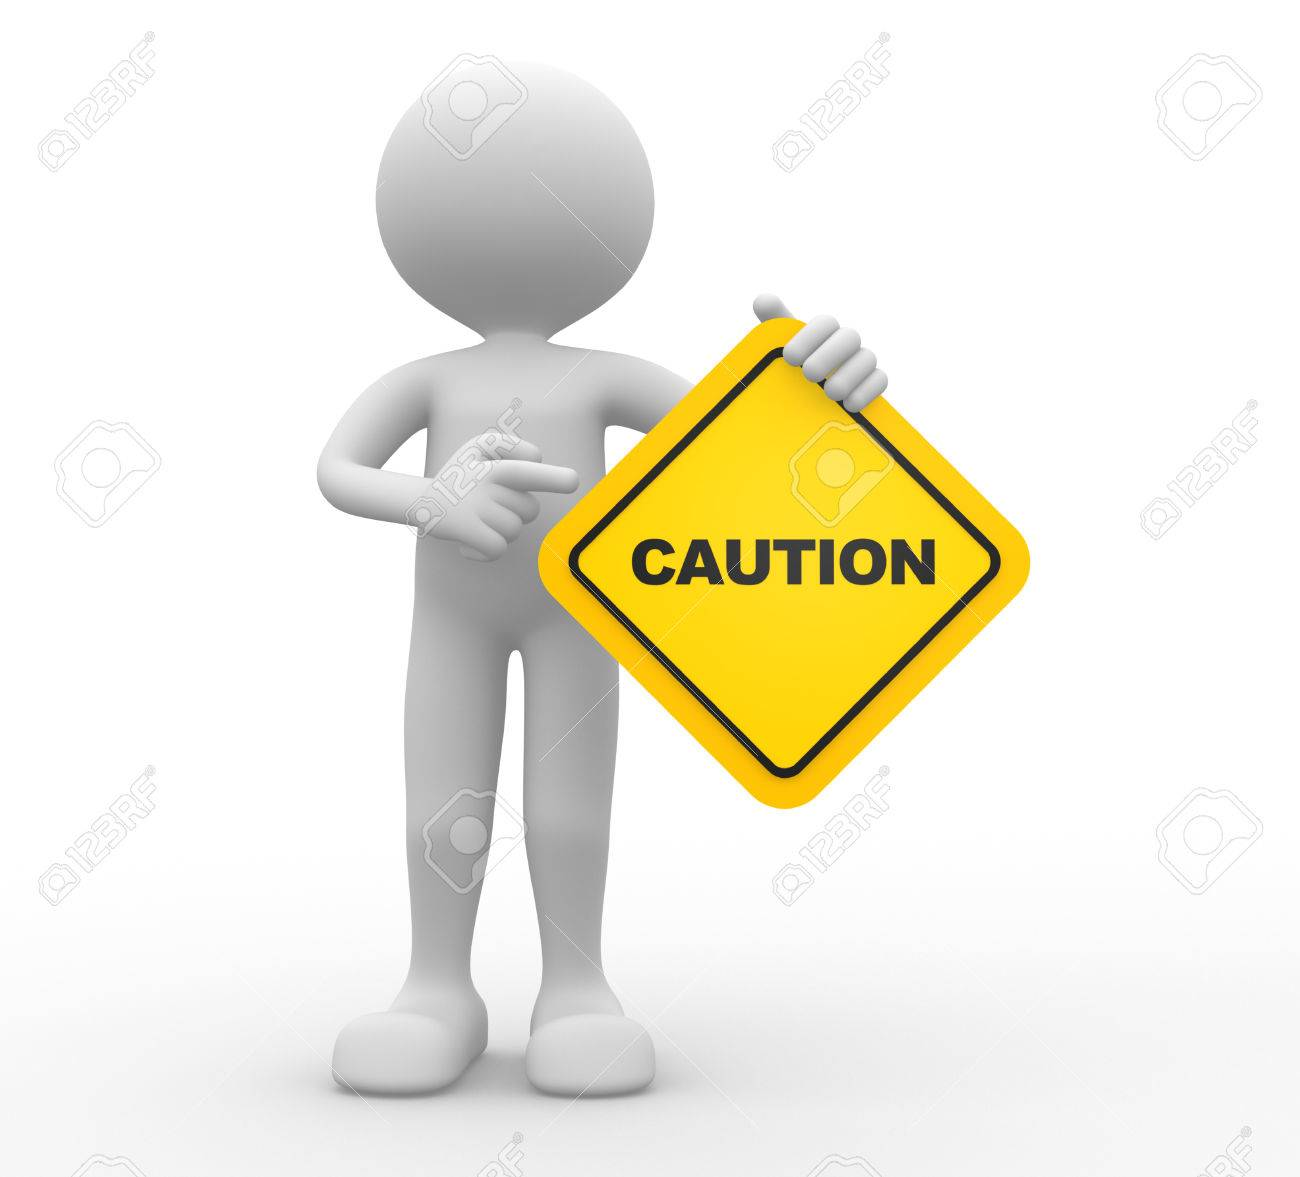 3d people - man, person holding road sign of caution Standard-Bild - 43289212